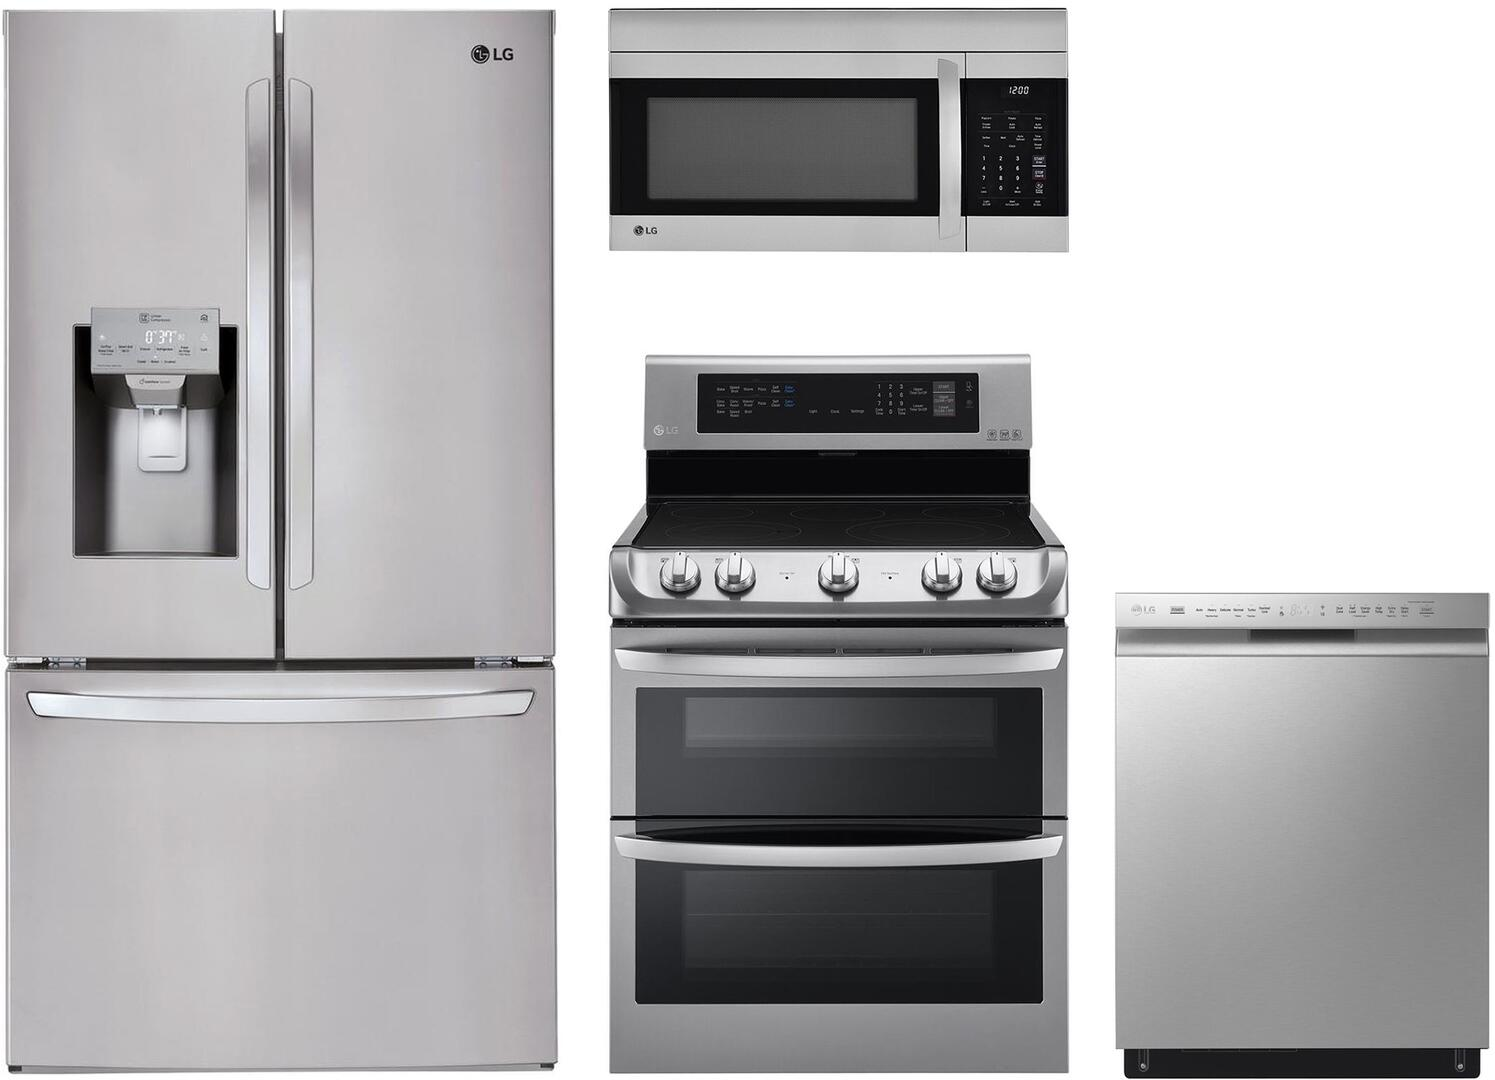 LG 974867 4 piece Printproof Stainless Steel Kitchen Appliances Package